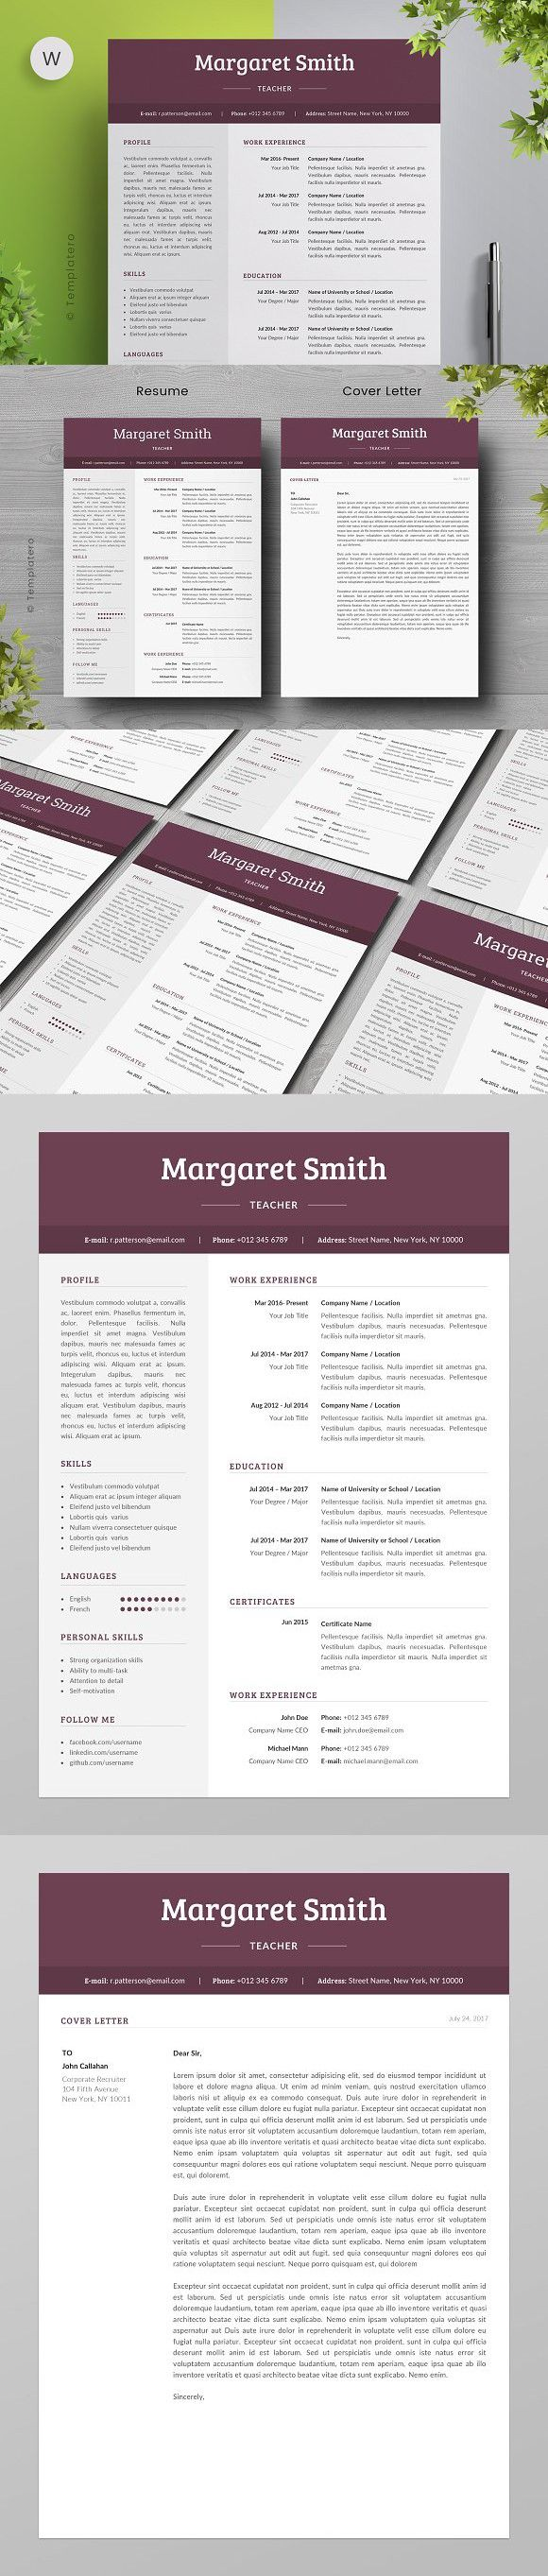 cover letter for sales manager position%0A Resume Template   Free Cover Letter  Resume Templates